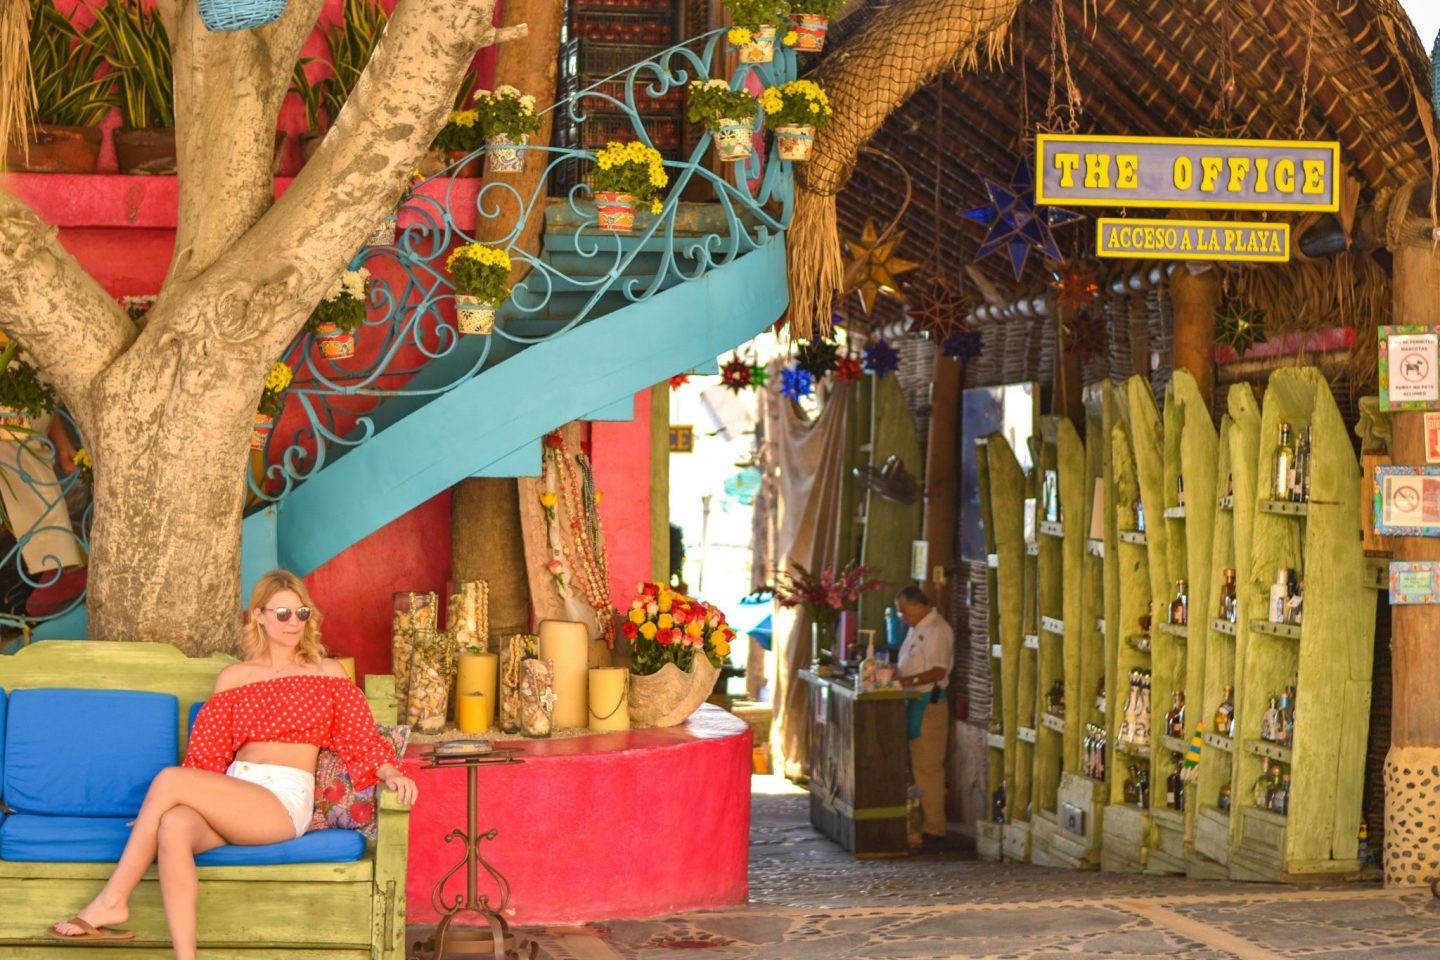 the office cabo san lucas travel guide